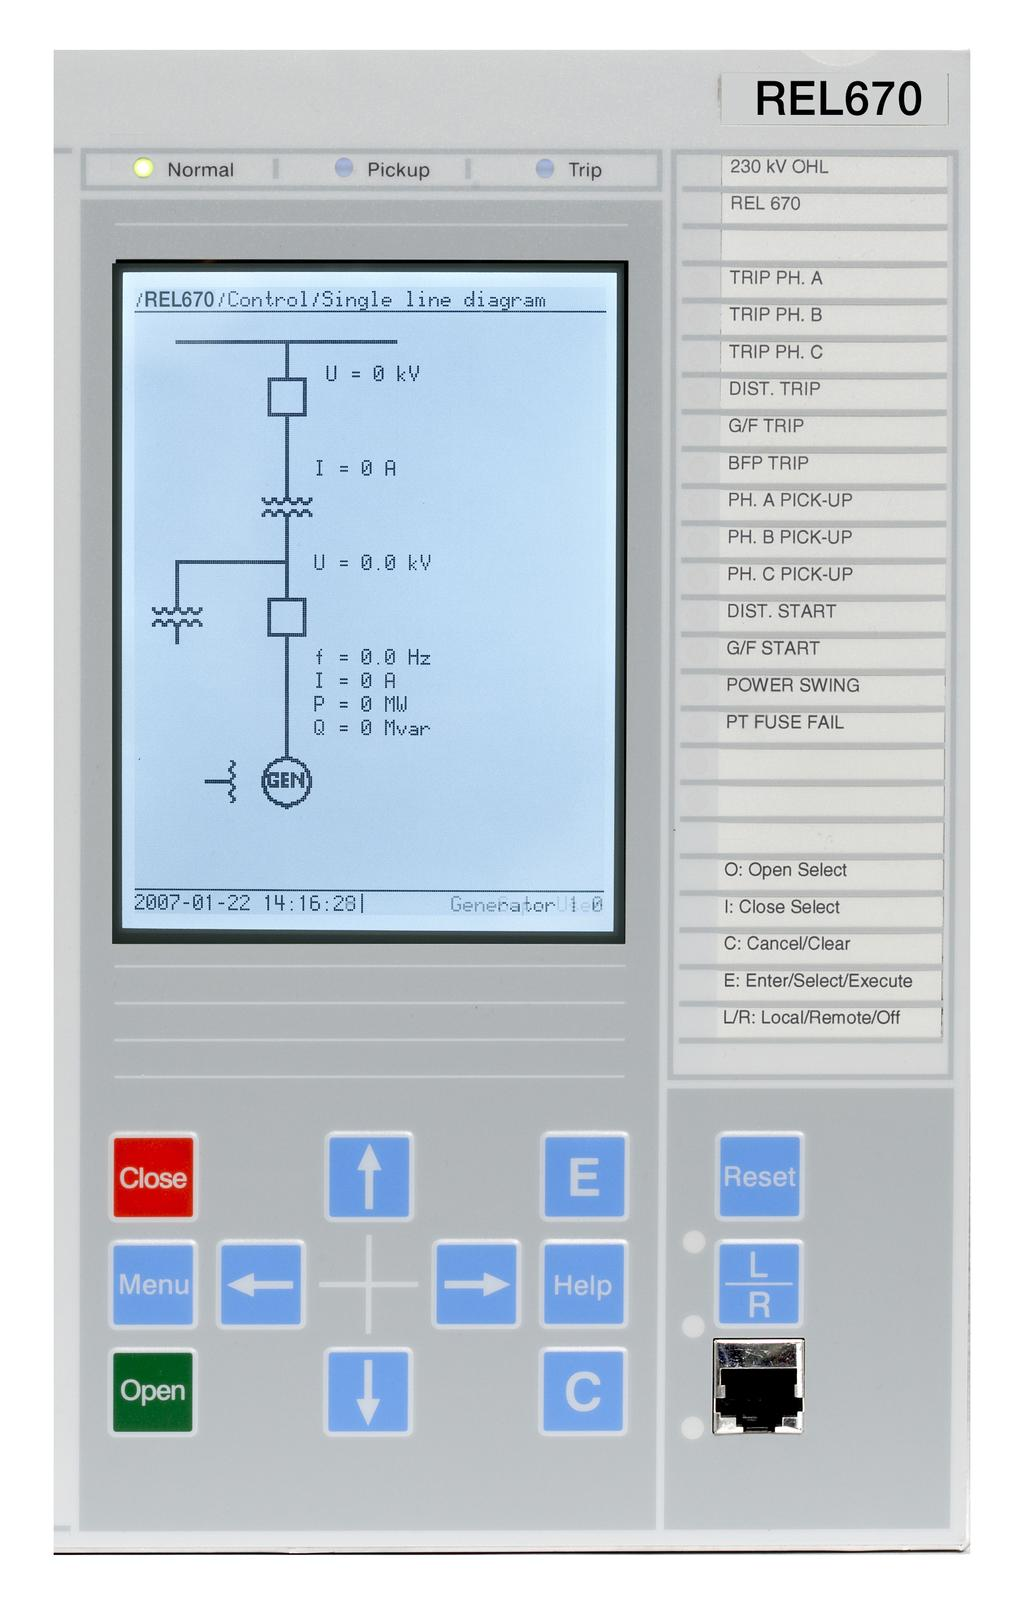 Relion 670 Series Line Distance Protection Rel670 Ansi Pre Over Current Dc Circuit Breaker With Time Delay Beijing 13 Human Machine Interface The Local Hmi